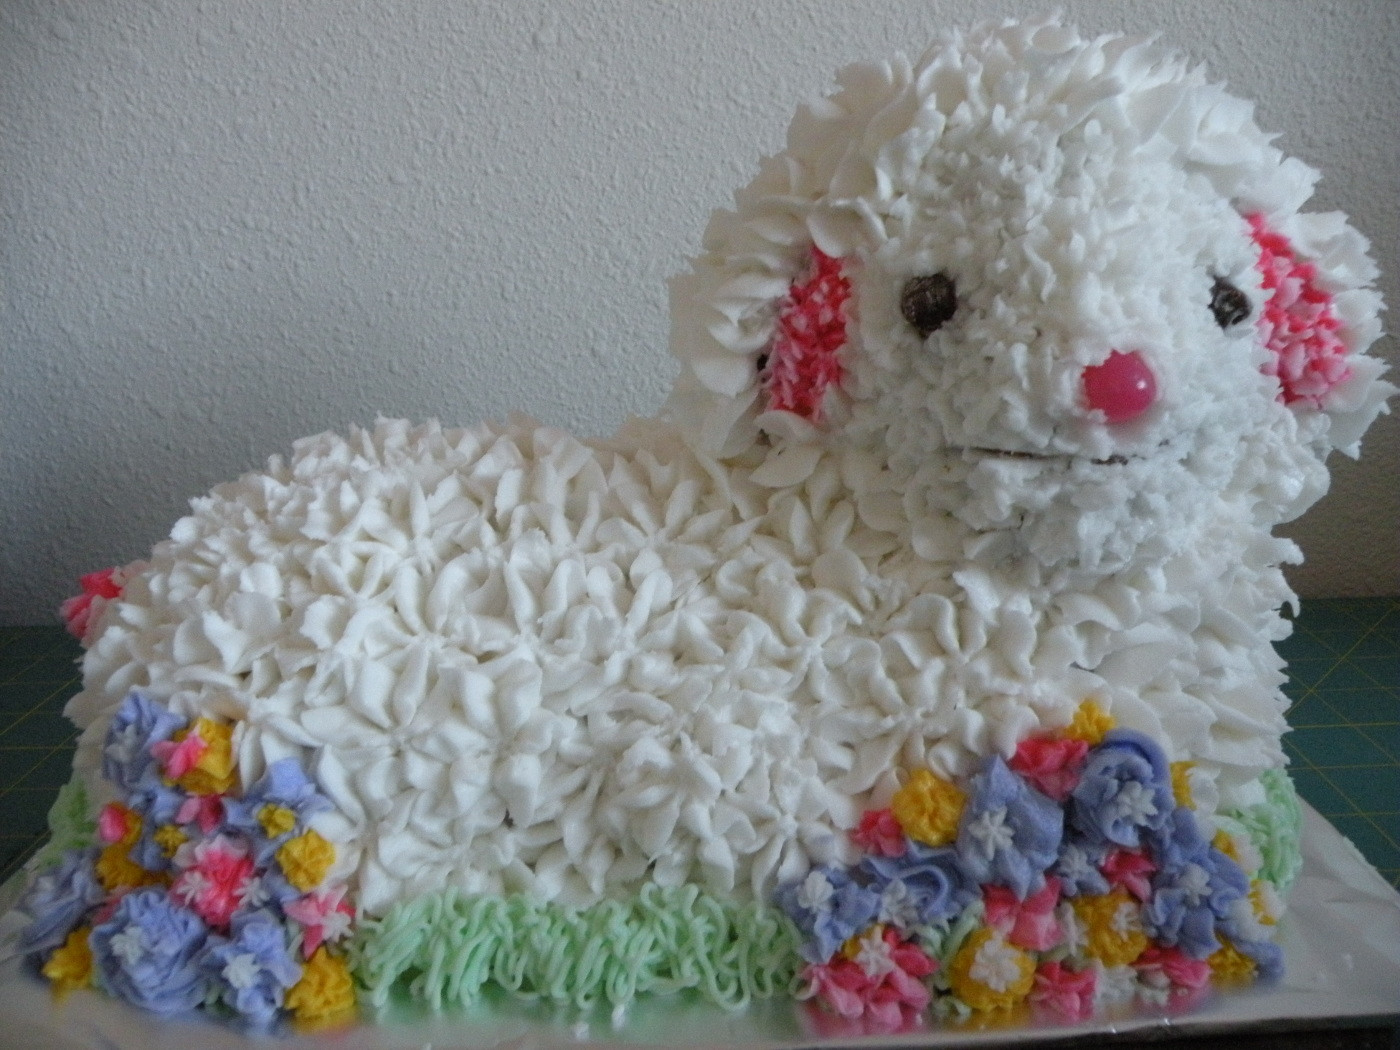 Easter Lamb Decorations  A Busy Easter Weekend Lamb Cake Decorating Quilt With Us